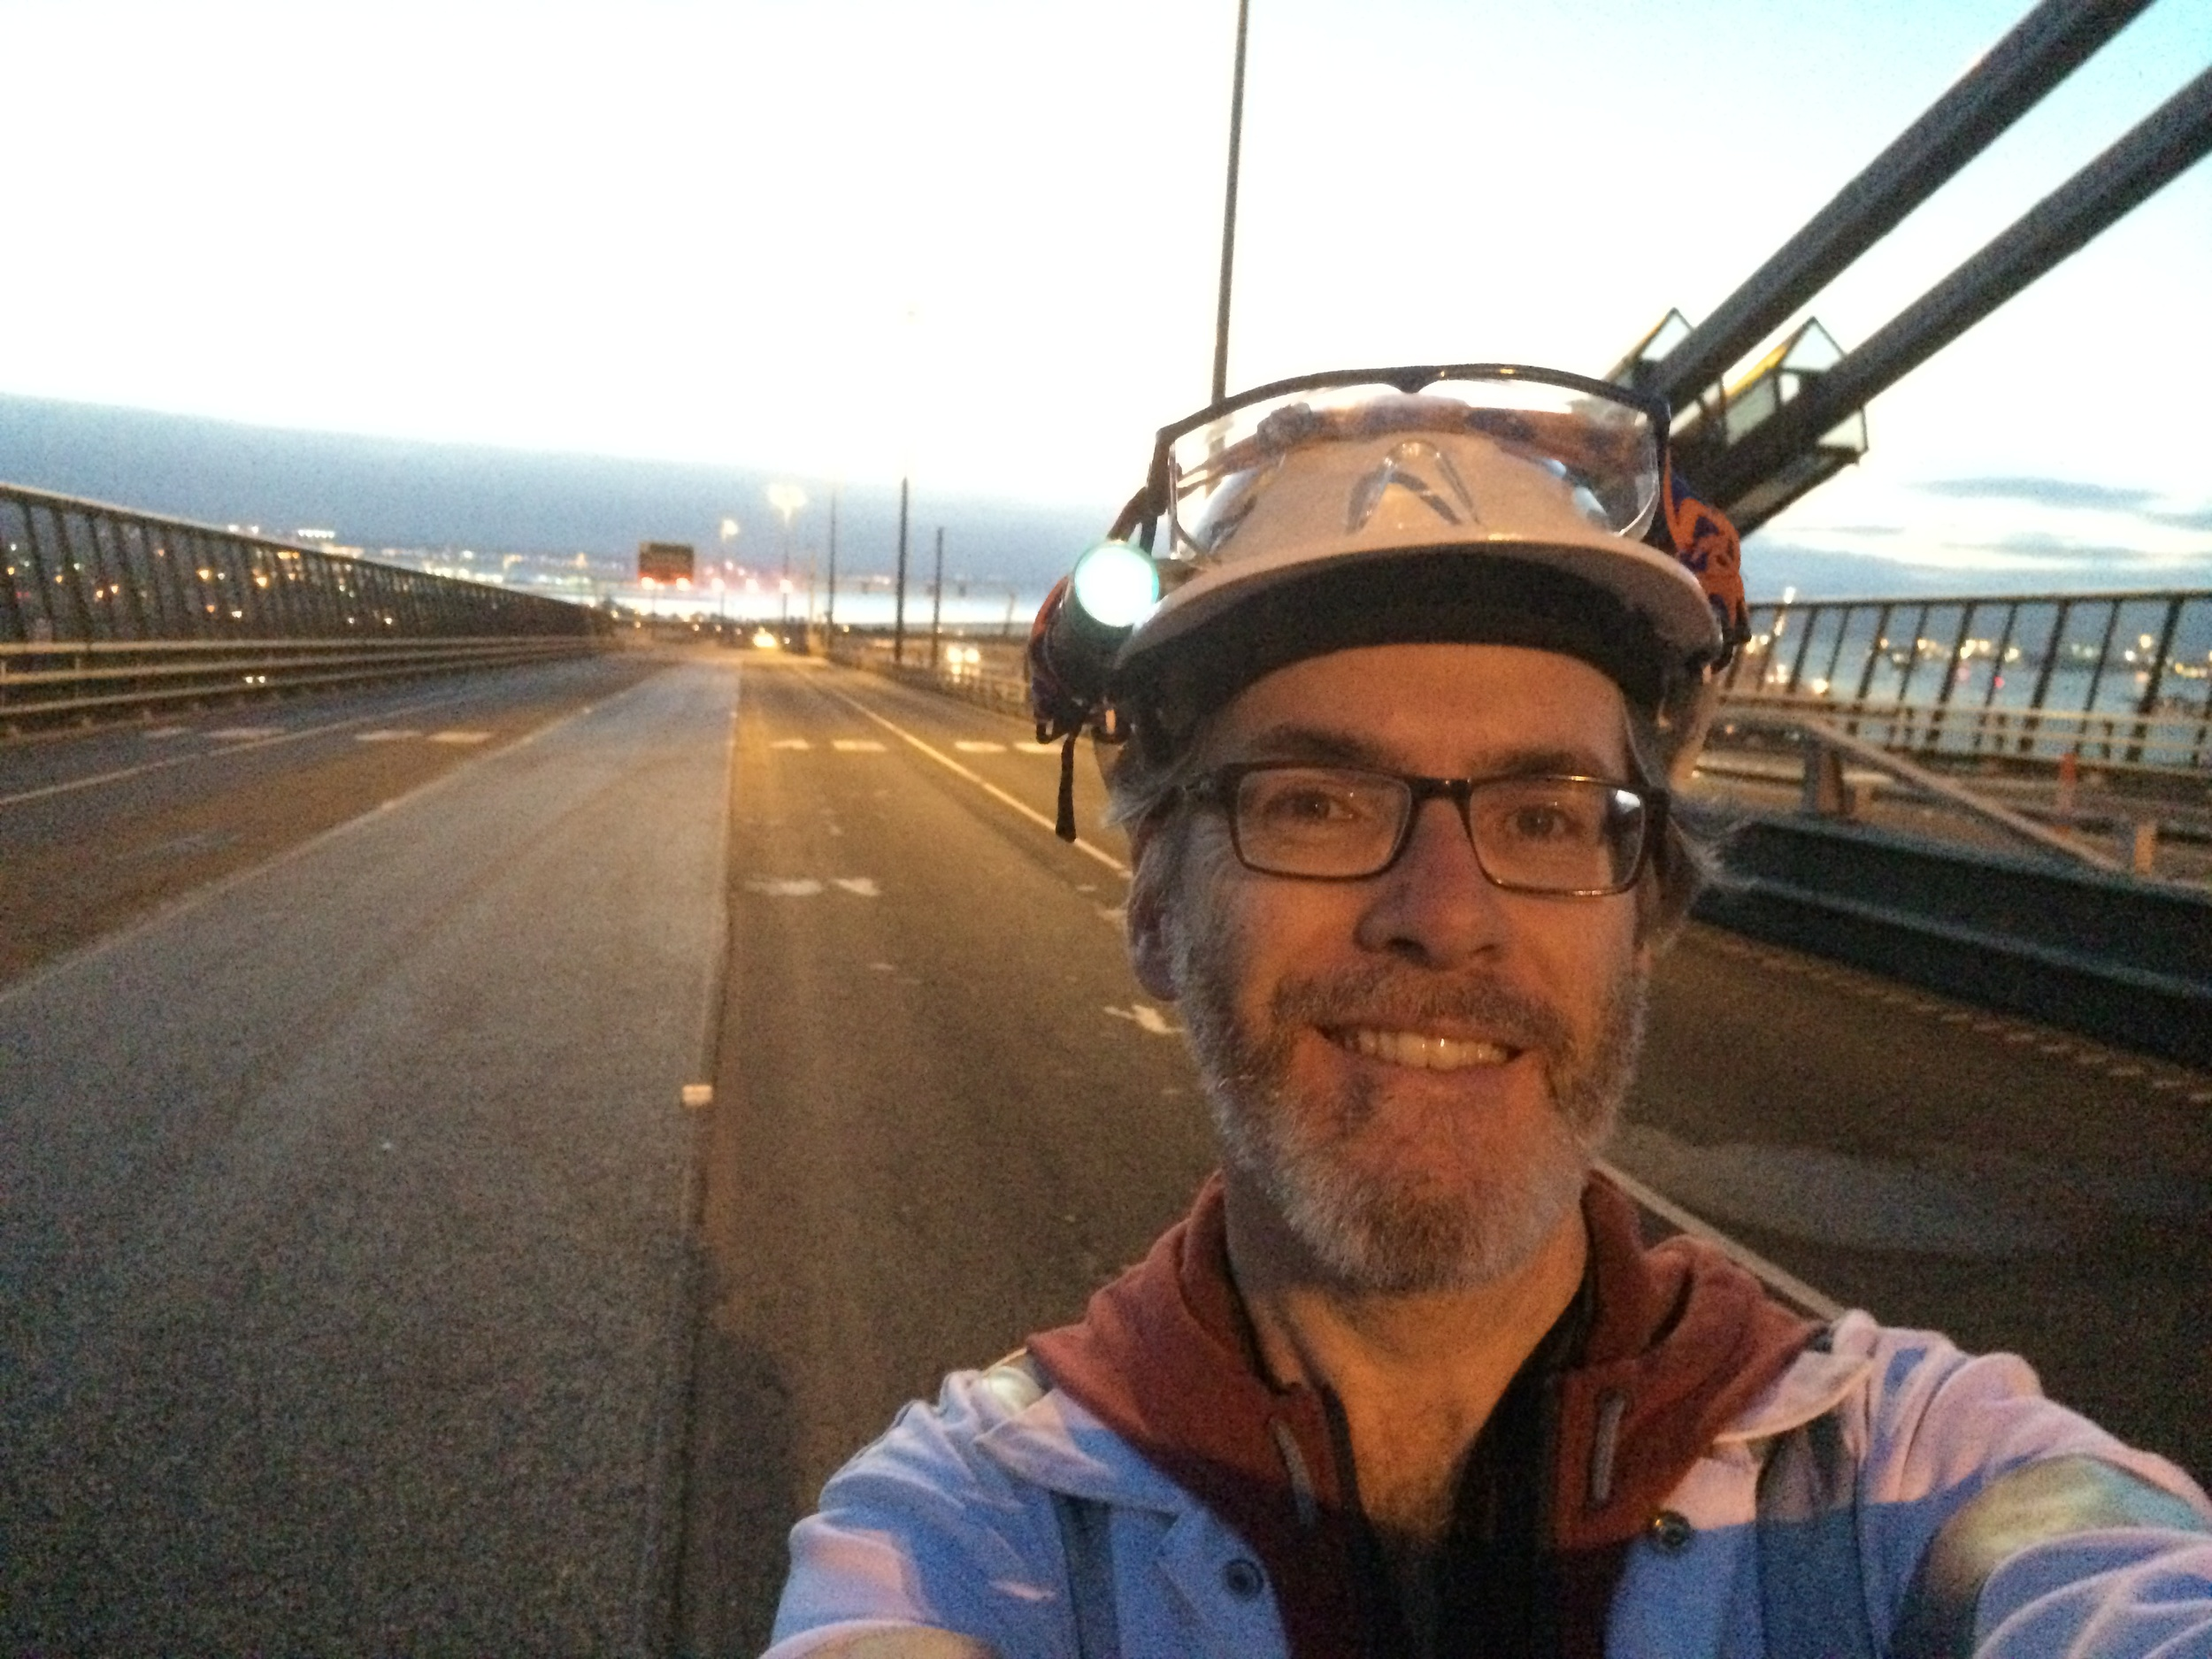 Dawn after a long night shoot - time for a quick selfie on the bridge before heading home.